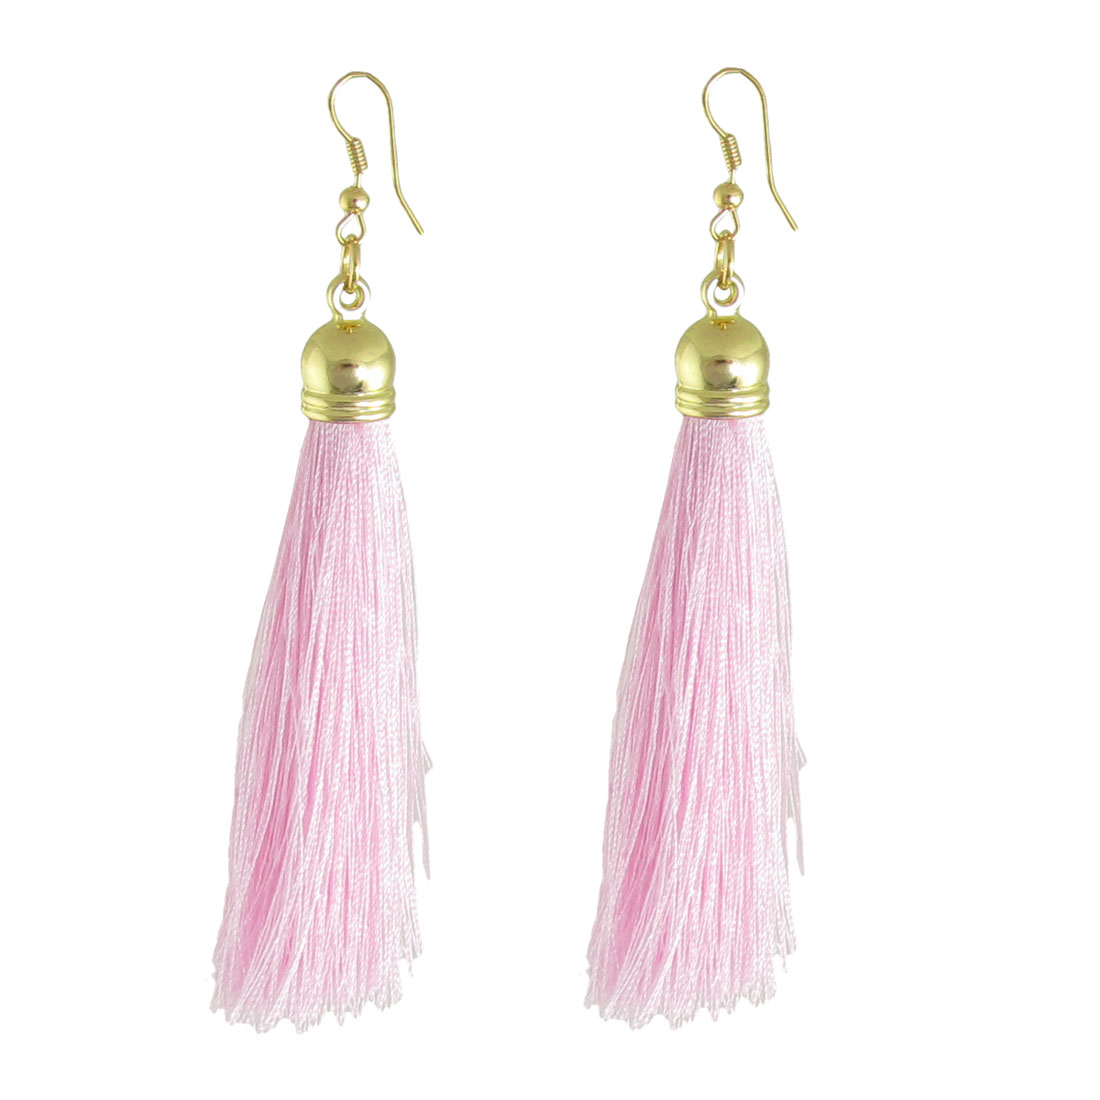 Pair Pink Nylon Tassel Dangle Fish Hook Earrings Jewelry for Women